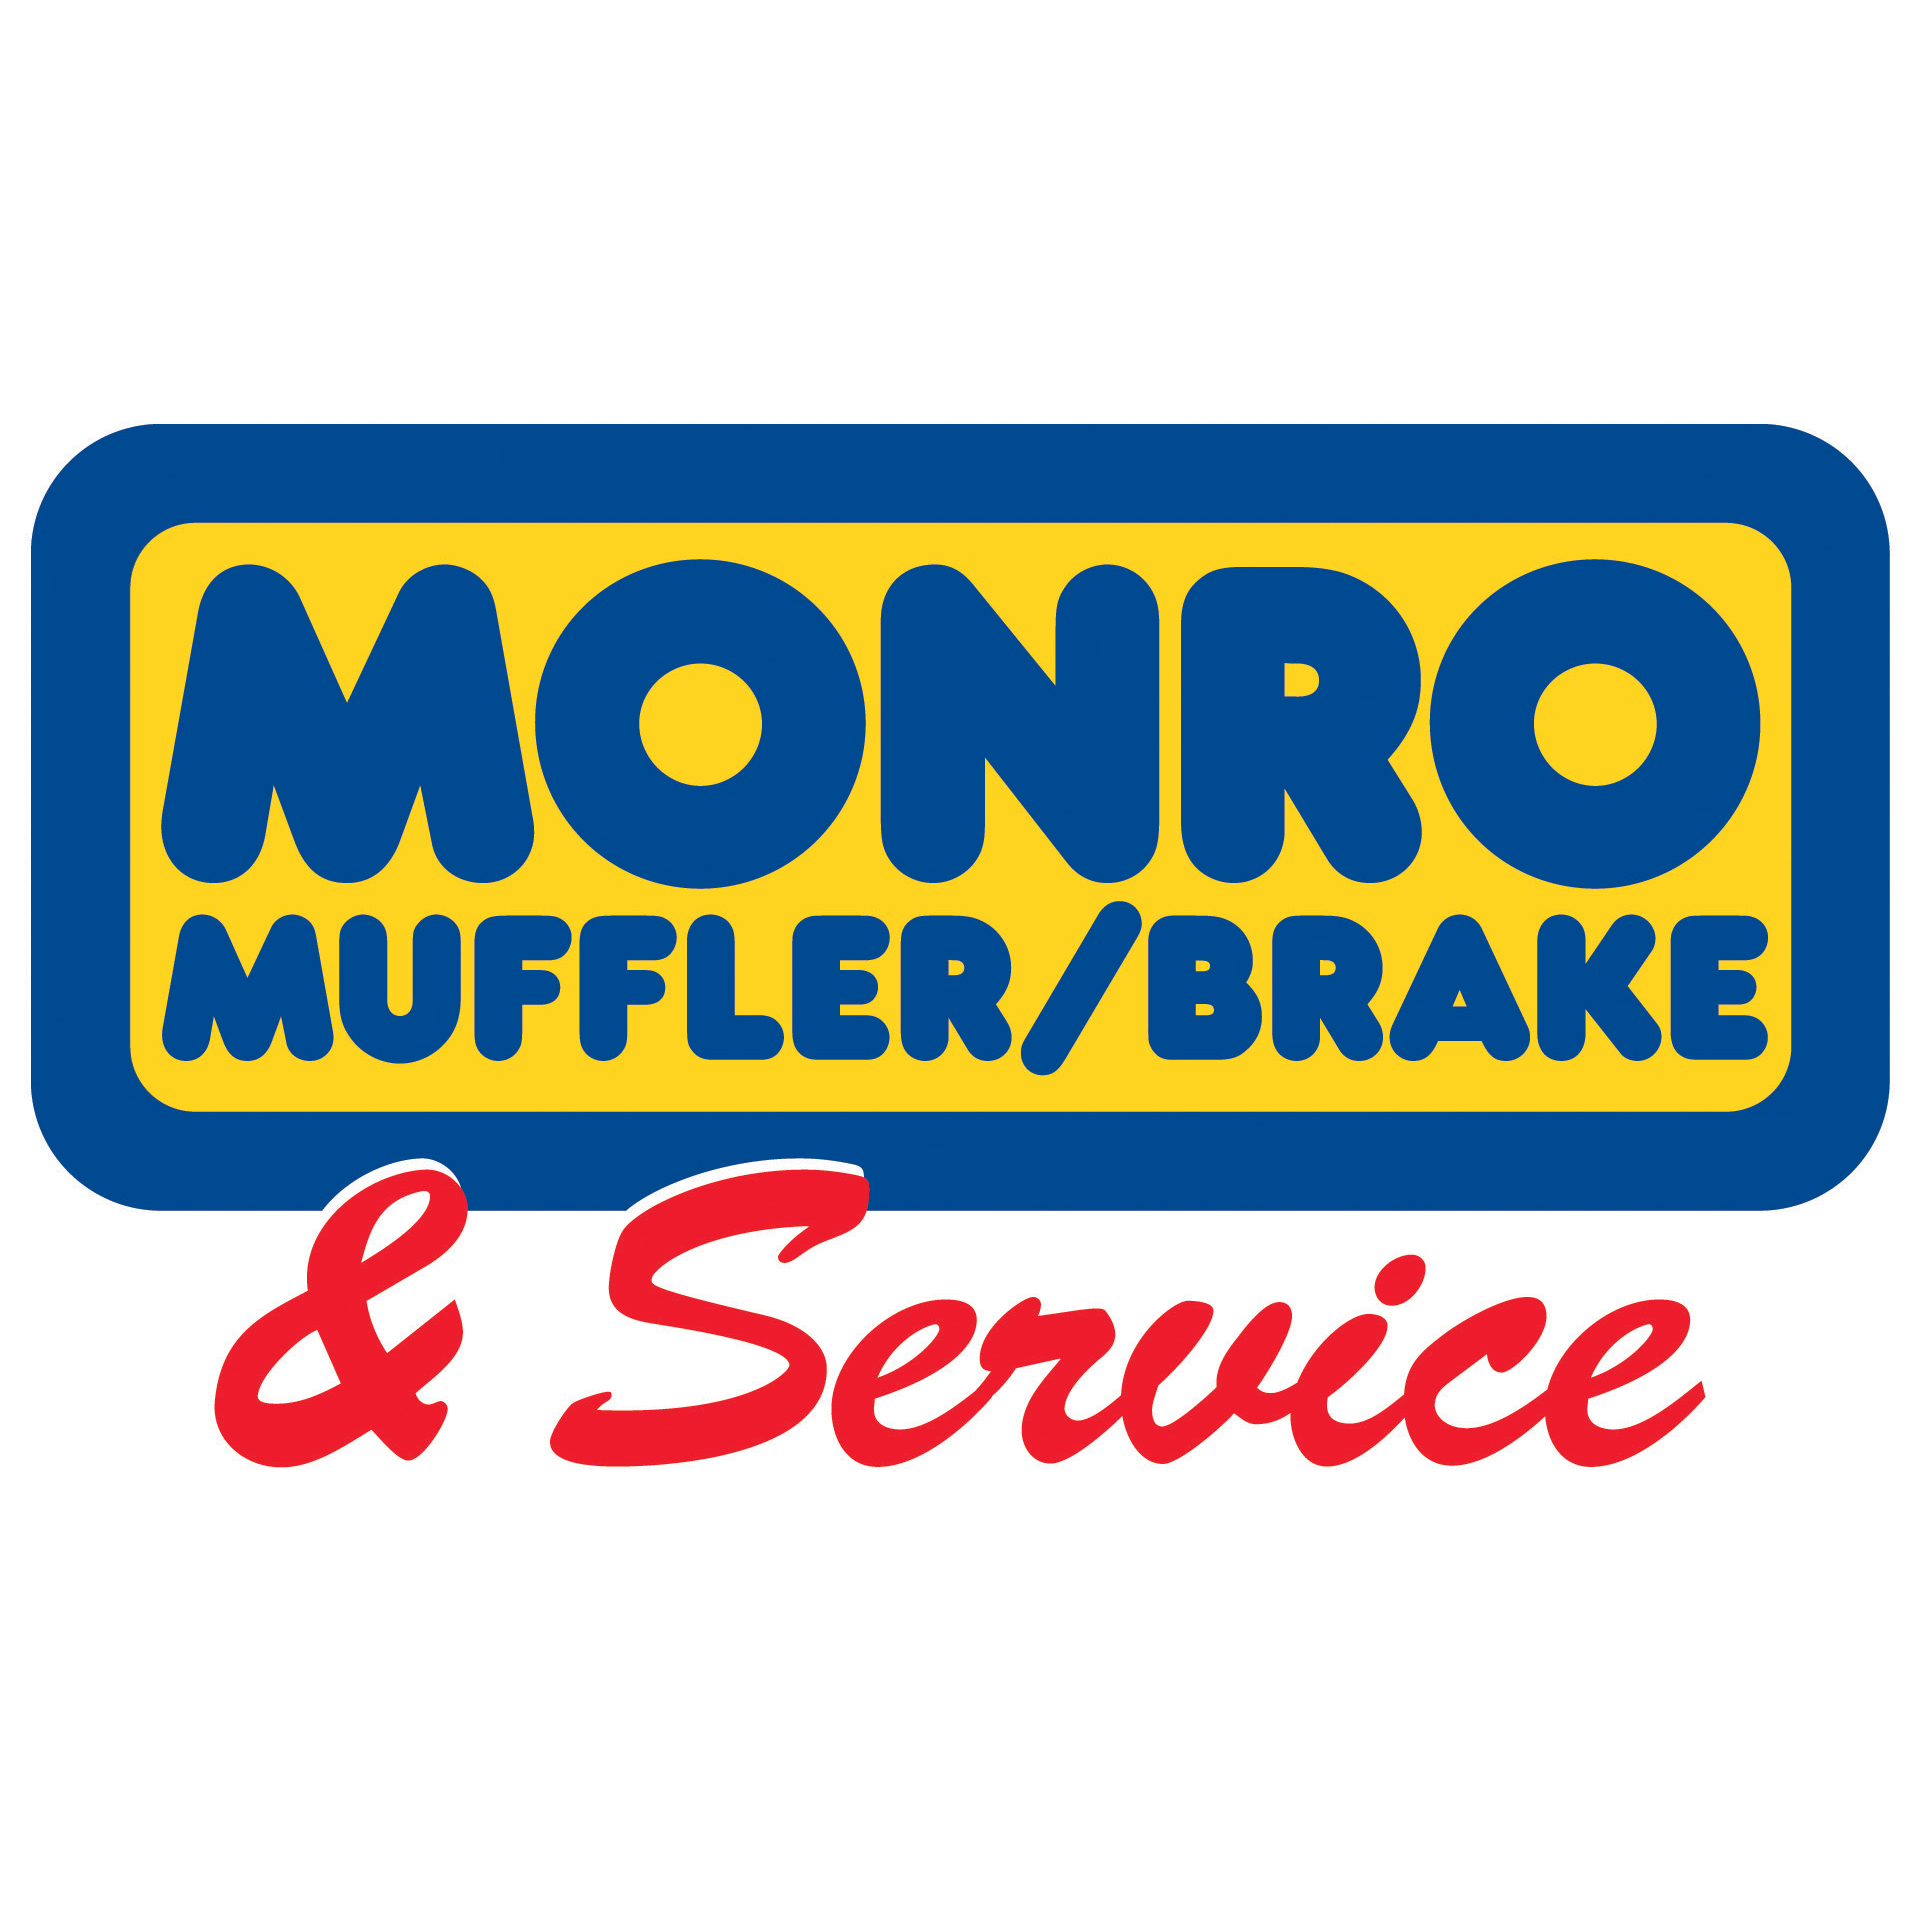 Monro Muffler Brake & Service - Massillon, OH - General Auto Repair & Service